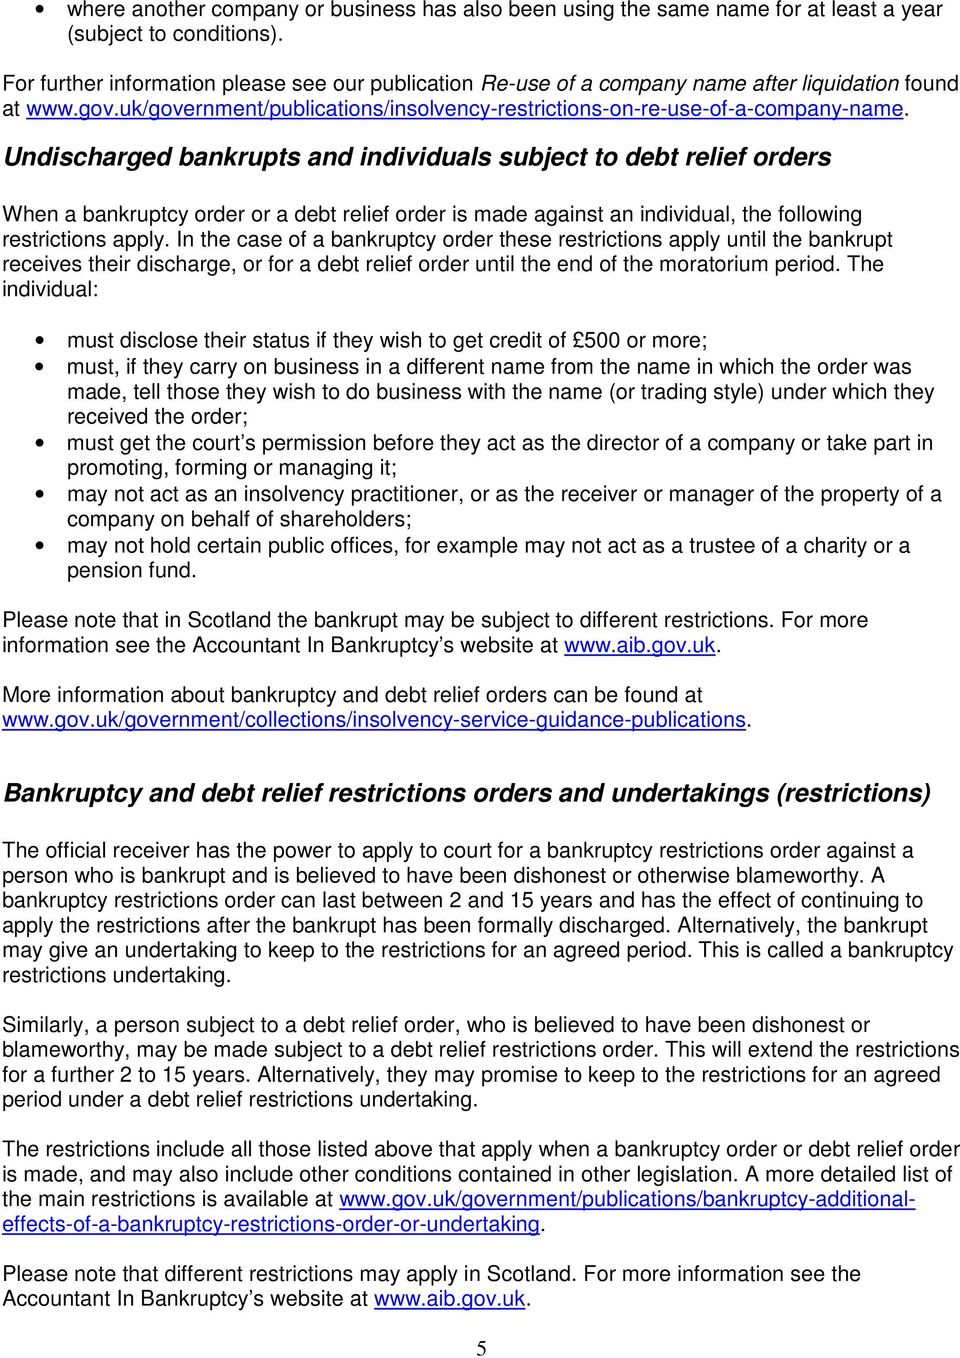 Undischarged bankrupts and individuals subject to debt relief orders When a bankruptcy order or a debt relief order is made against an individual, the following restrictions apply.